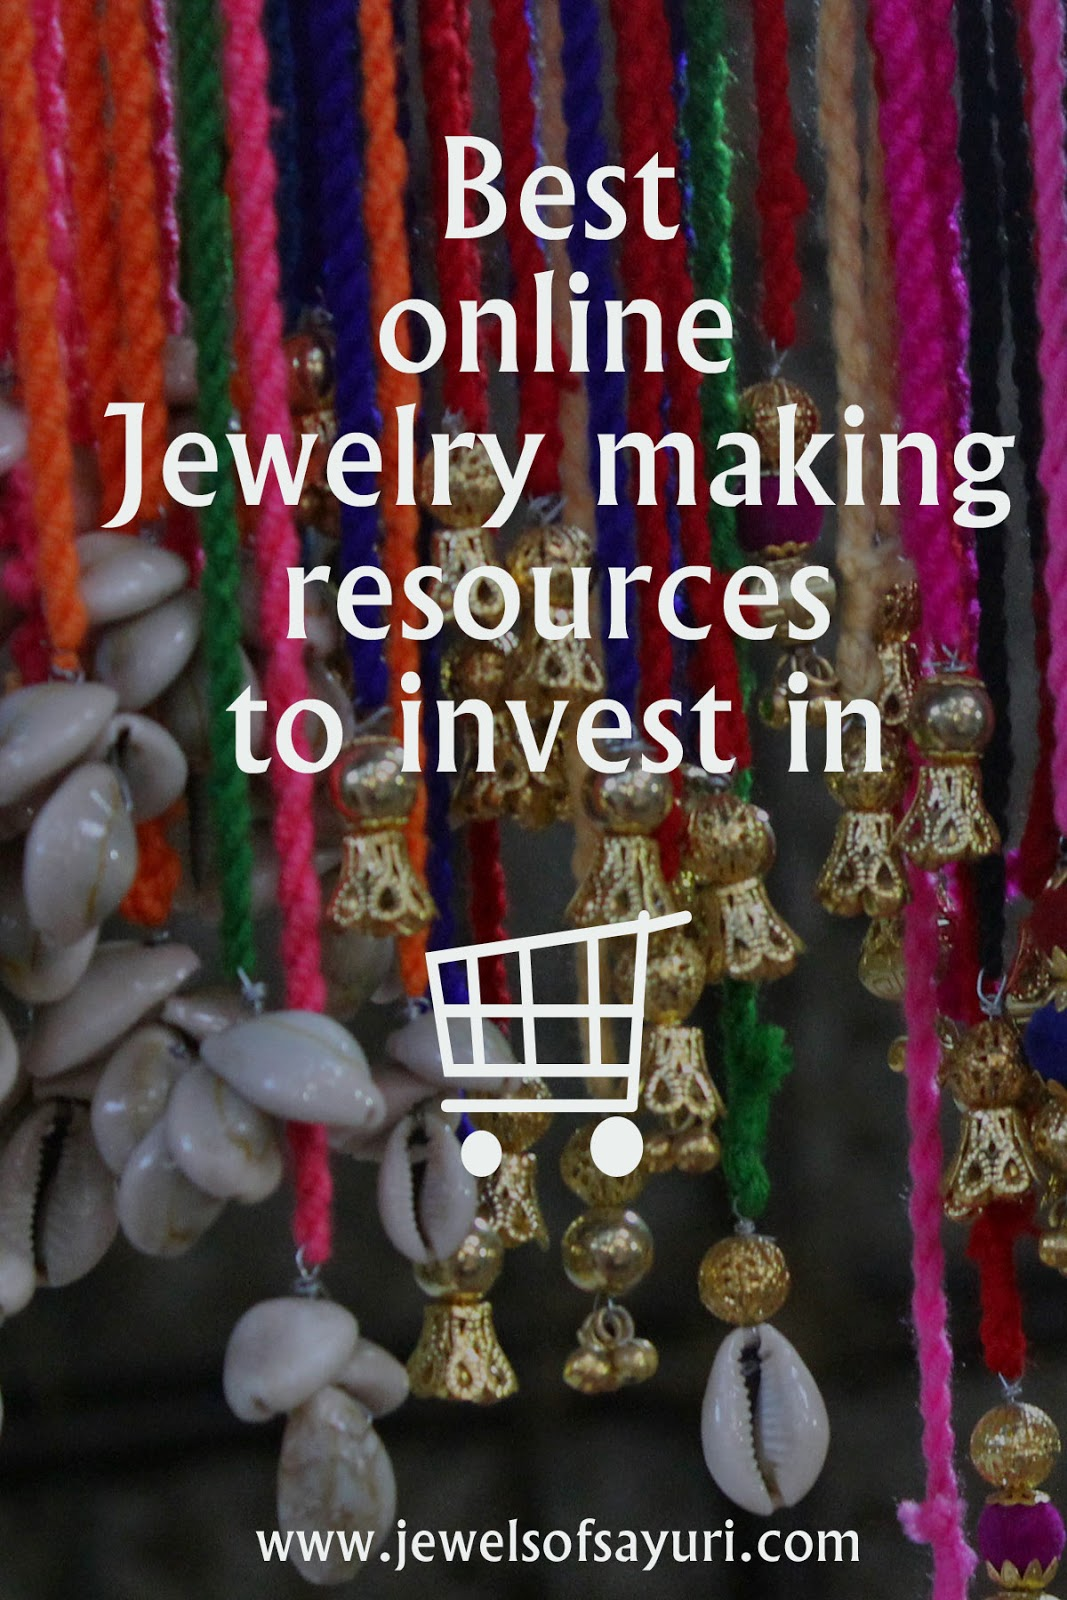 Best online Jewelry making resources to invest in